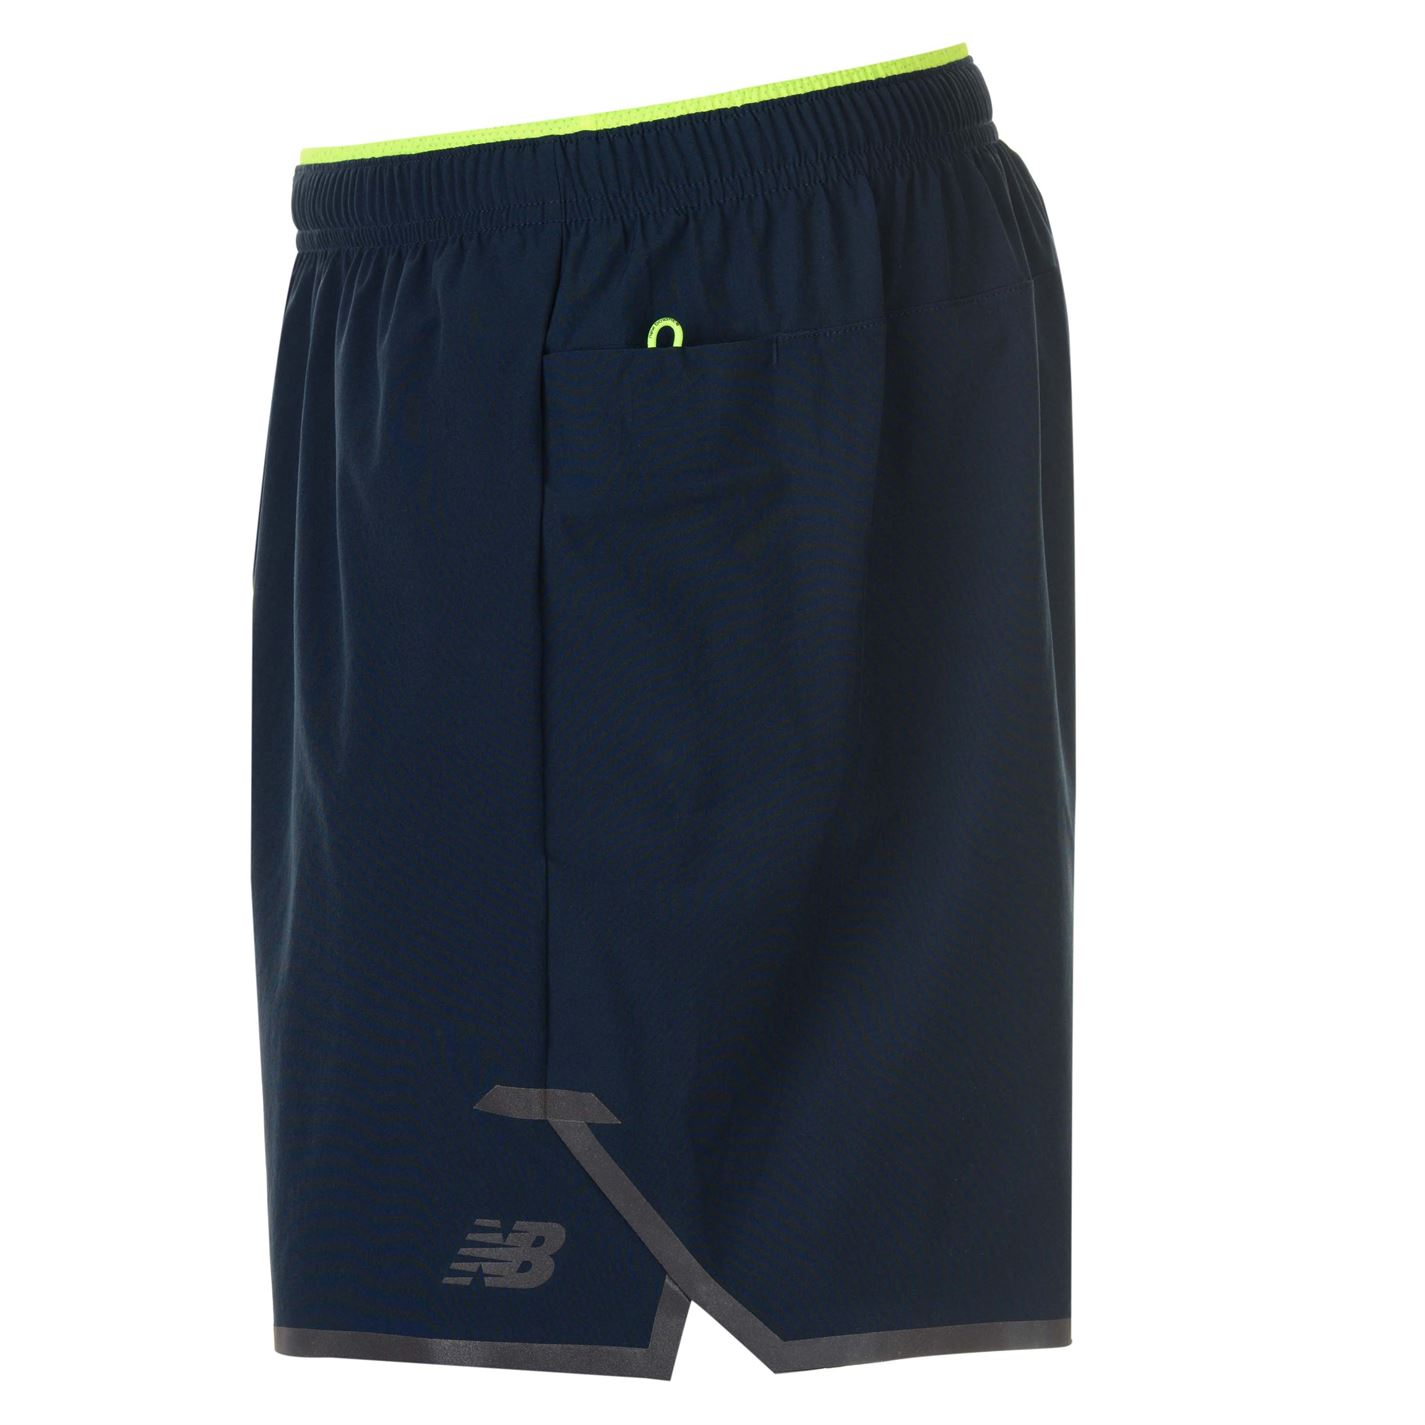 f087faee691aa New Balance Precision Short Mens Gents Performance Shorts Pants ...